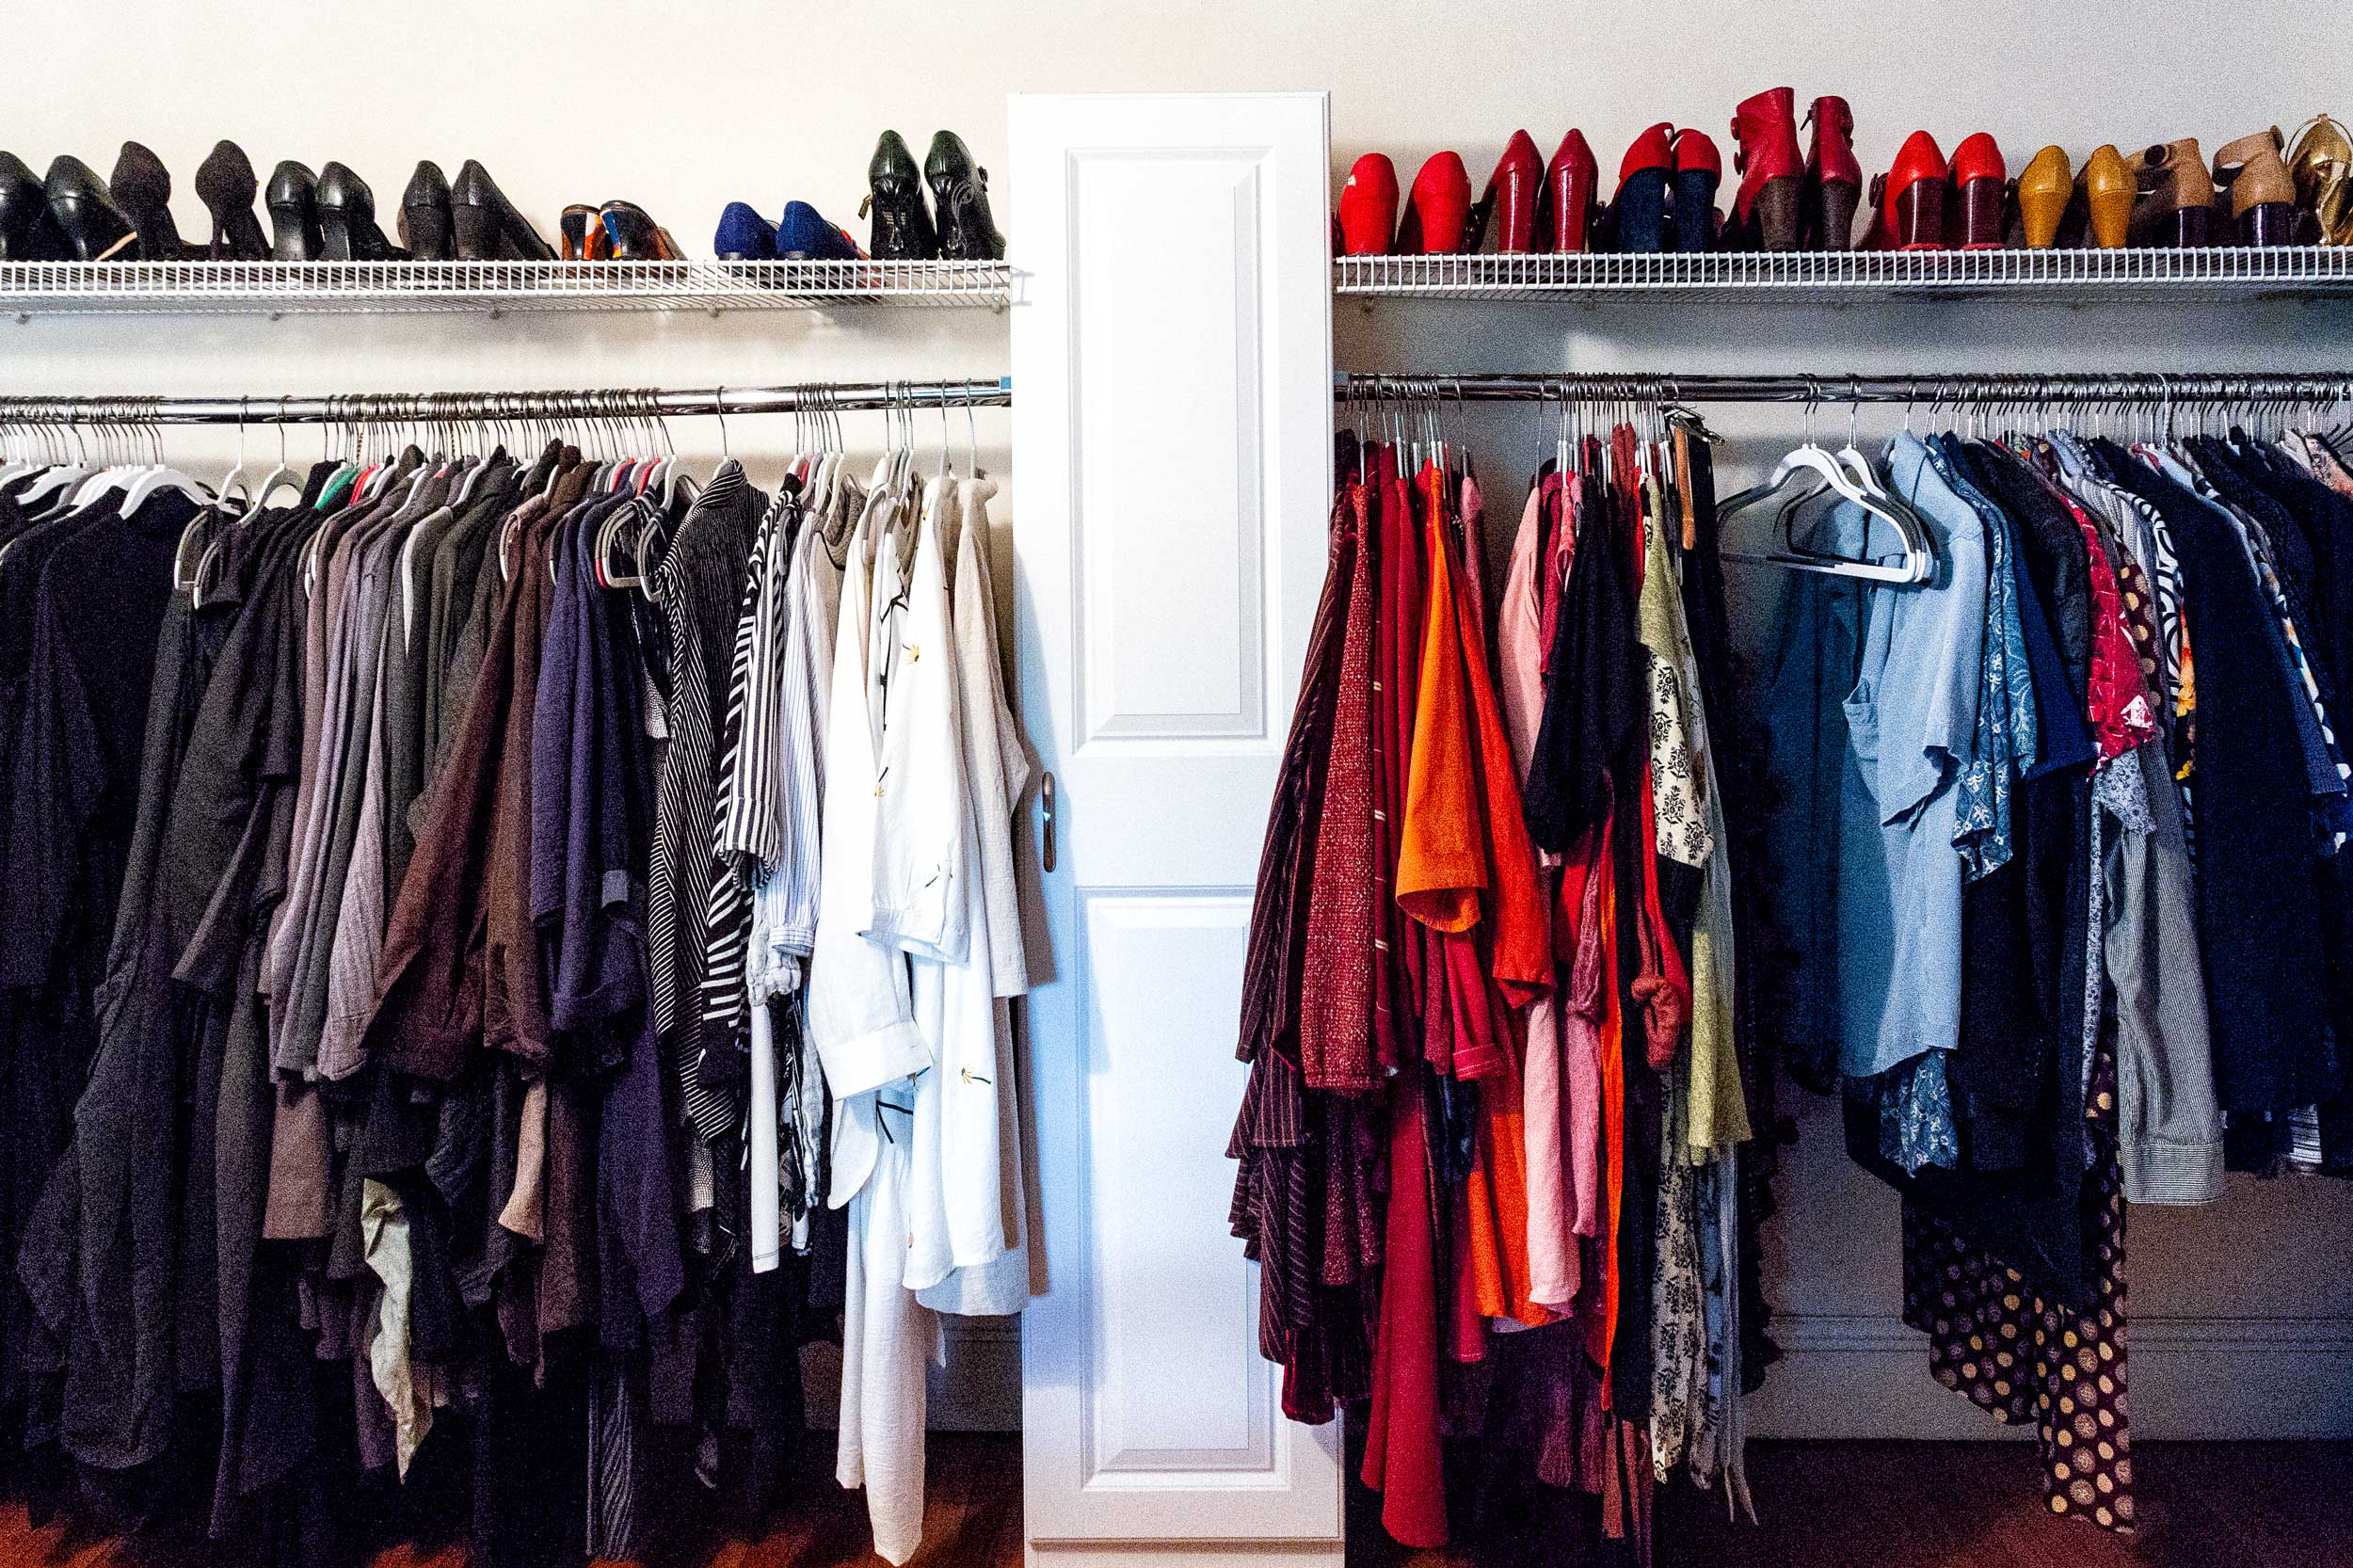 Saiber also stores her clothes in an open area of her bedroom. Just like the bathroom, she likes keeping her belongings visible to stay organized.